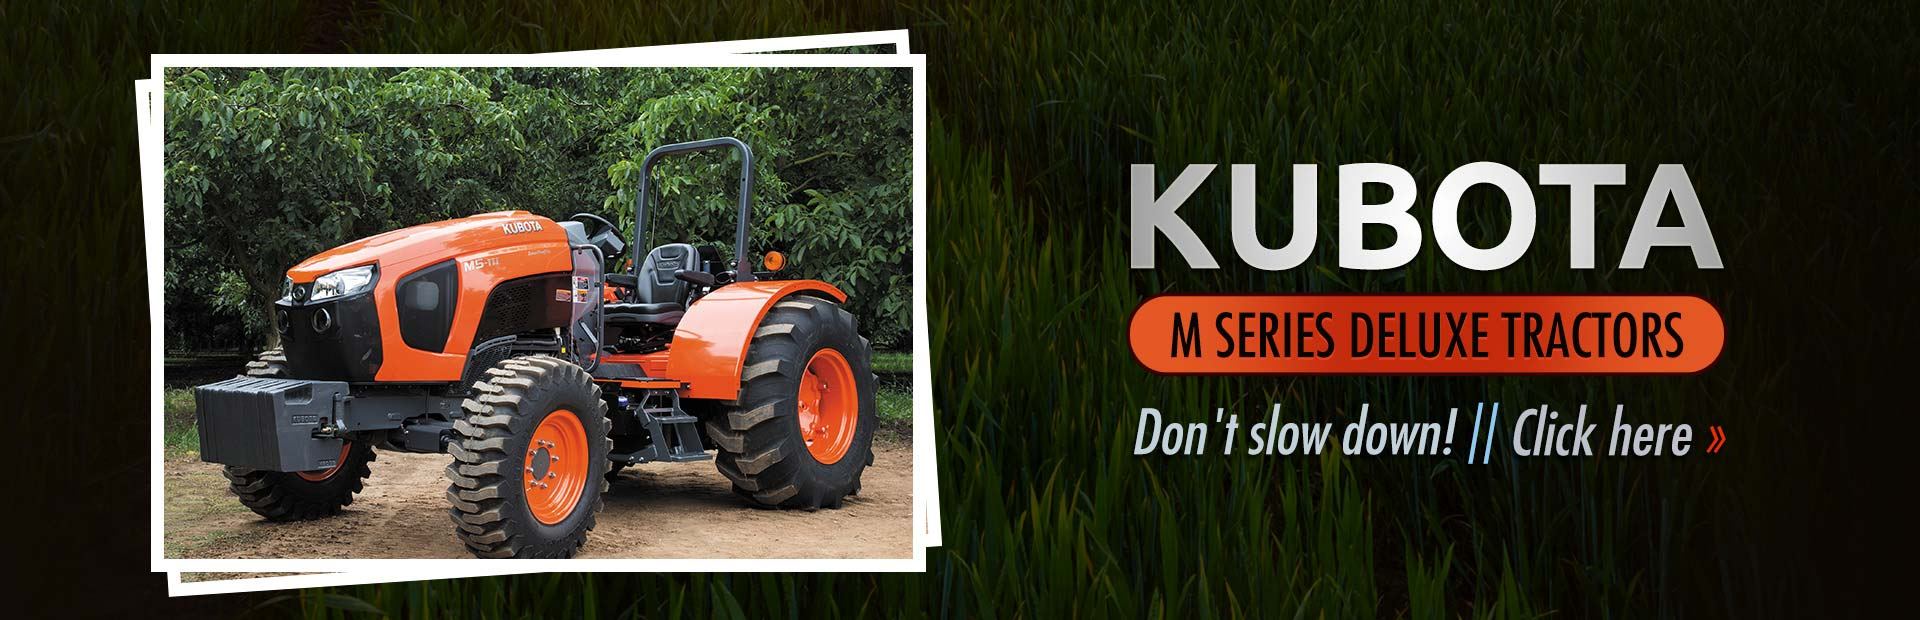 Click here to view our selection of Kubota M series deluxe tractors!